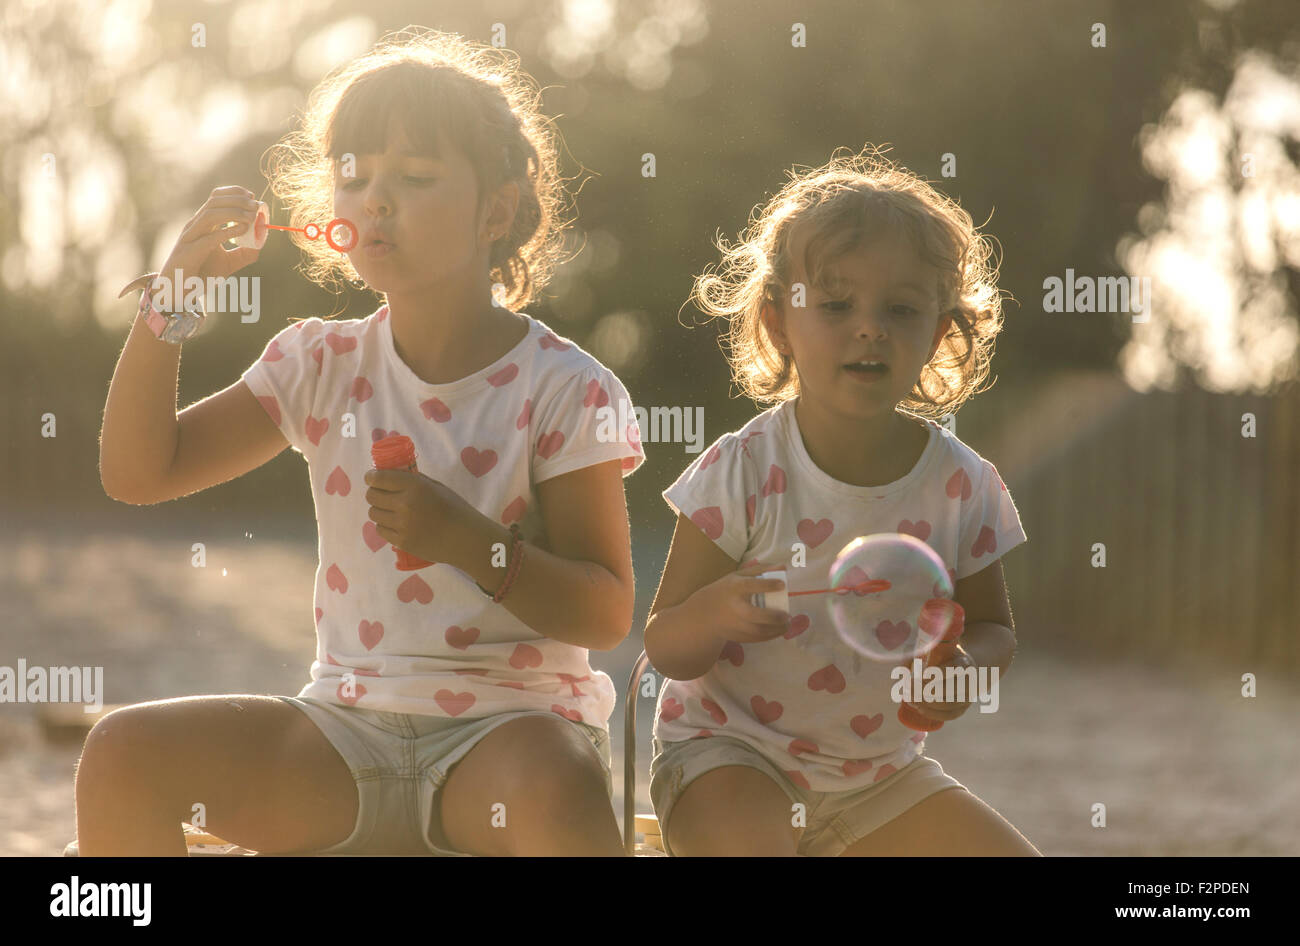 Two little sisters making soap bubbles in the park at twilight - Stock Image